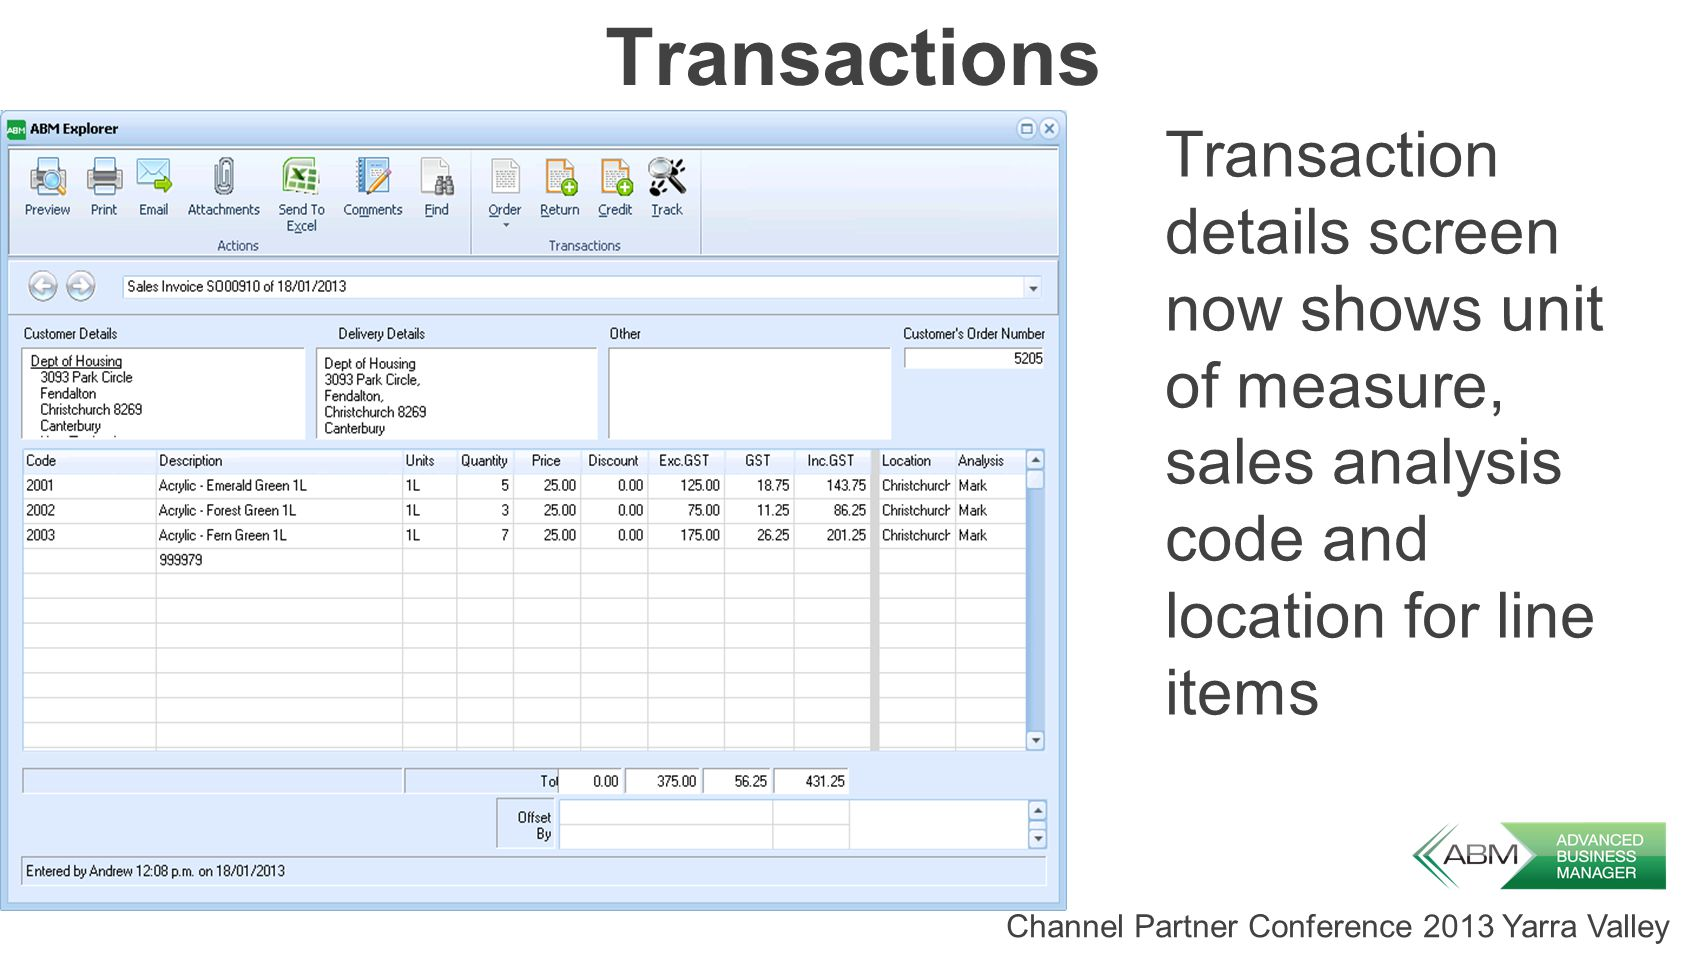 Channel Partner Conference 2013 Yarra Valley Transactions Transaction details screen now shows unit of measure, sales analysis code and location for line items